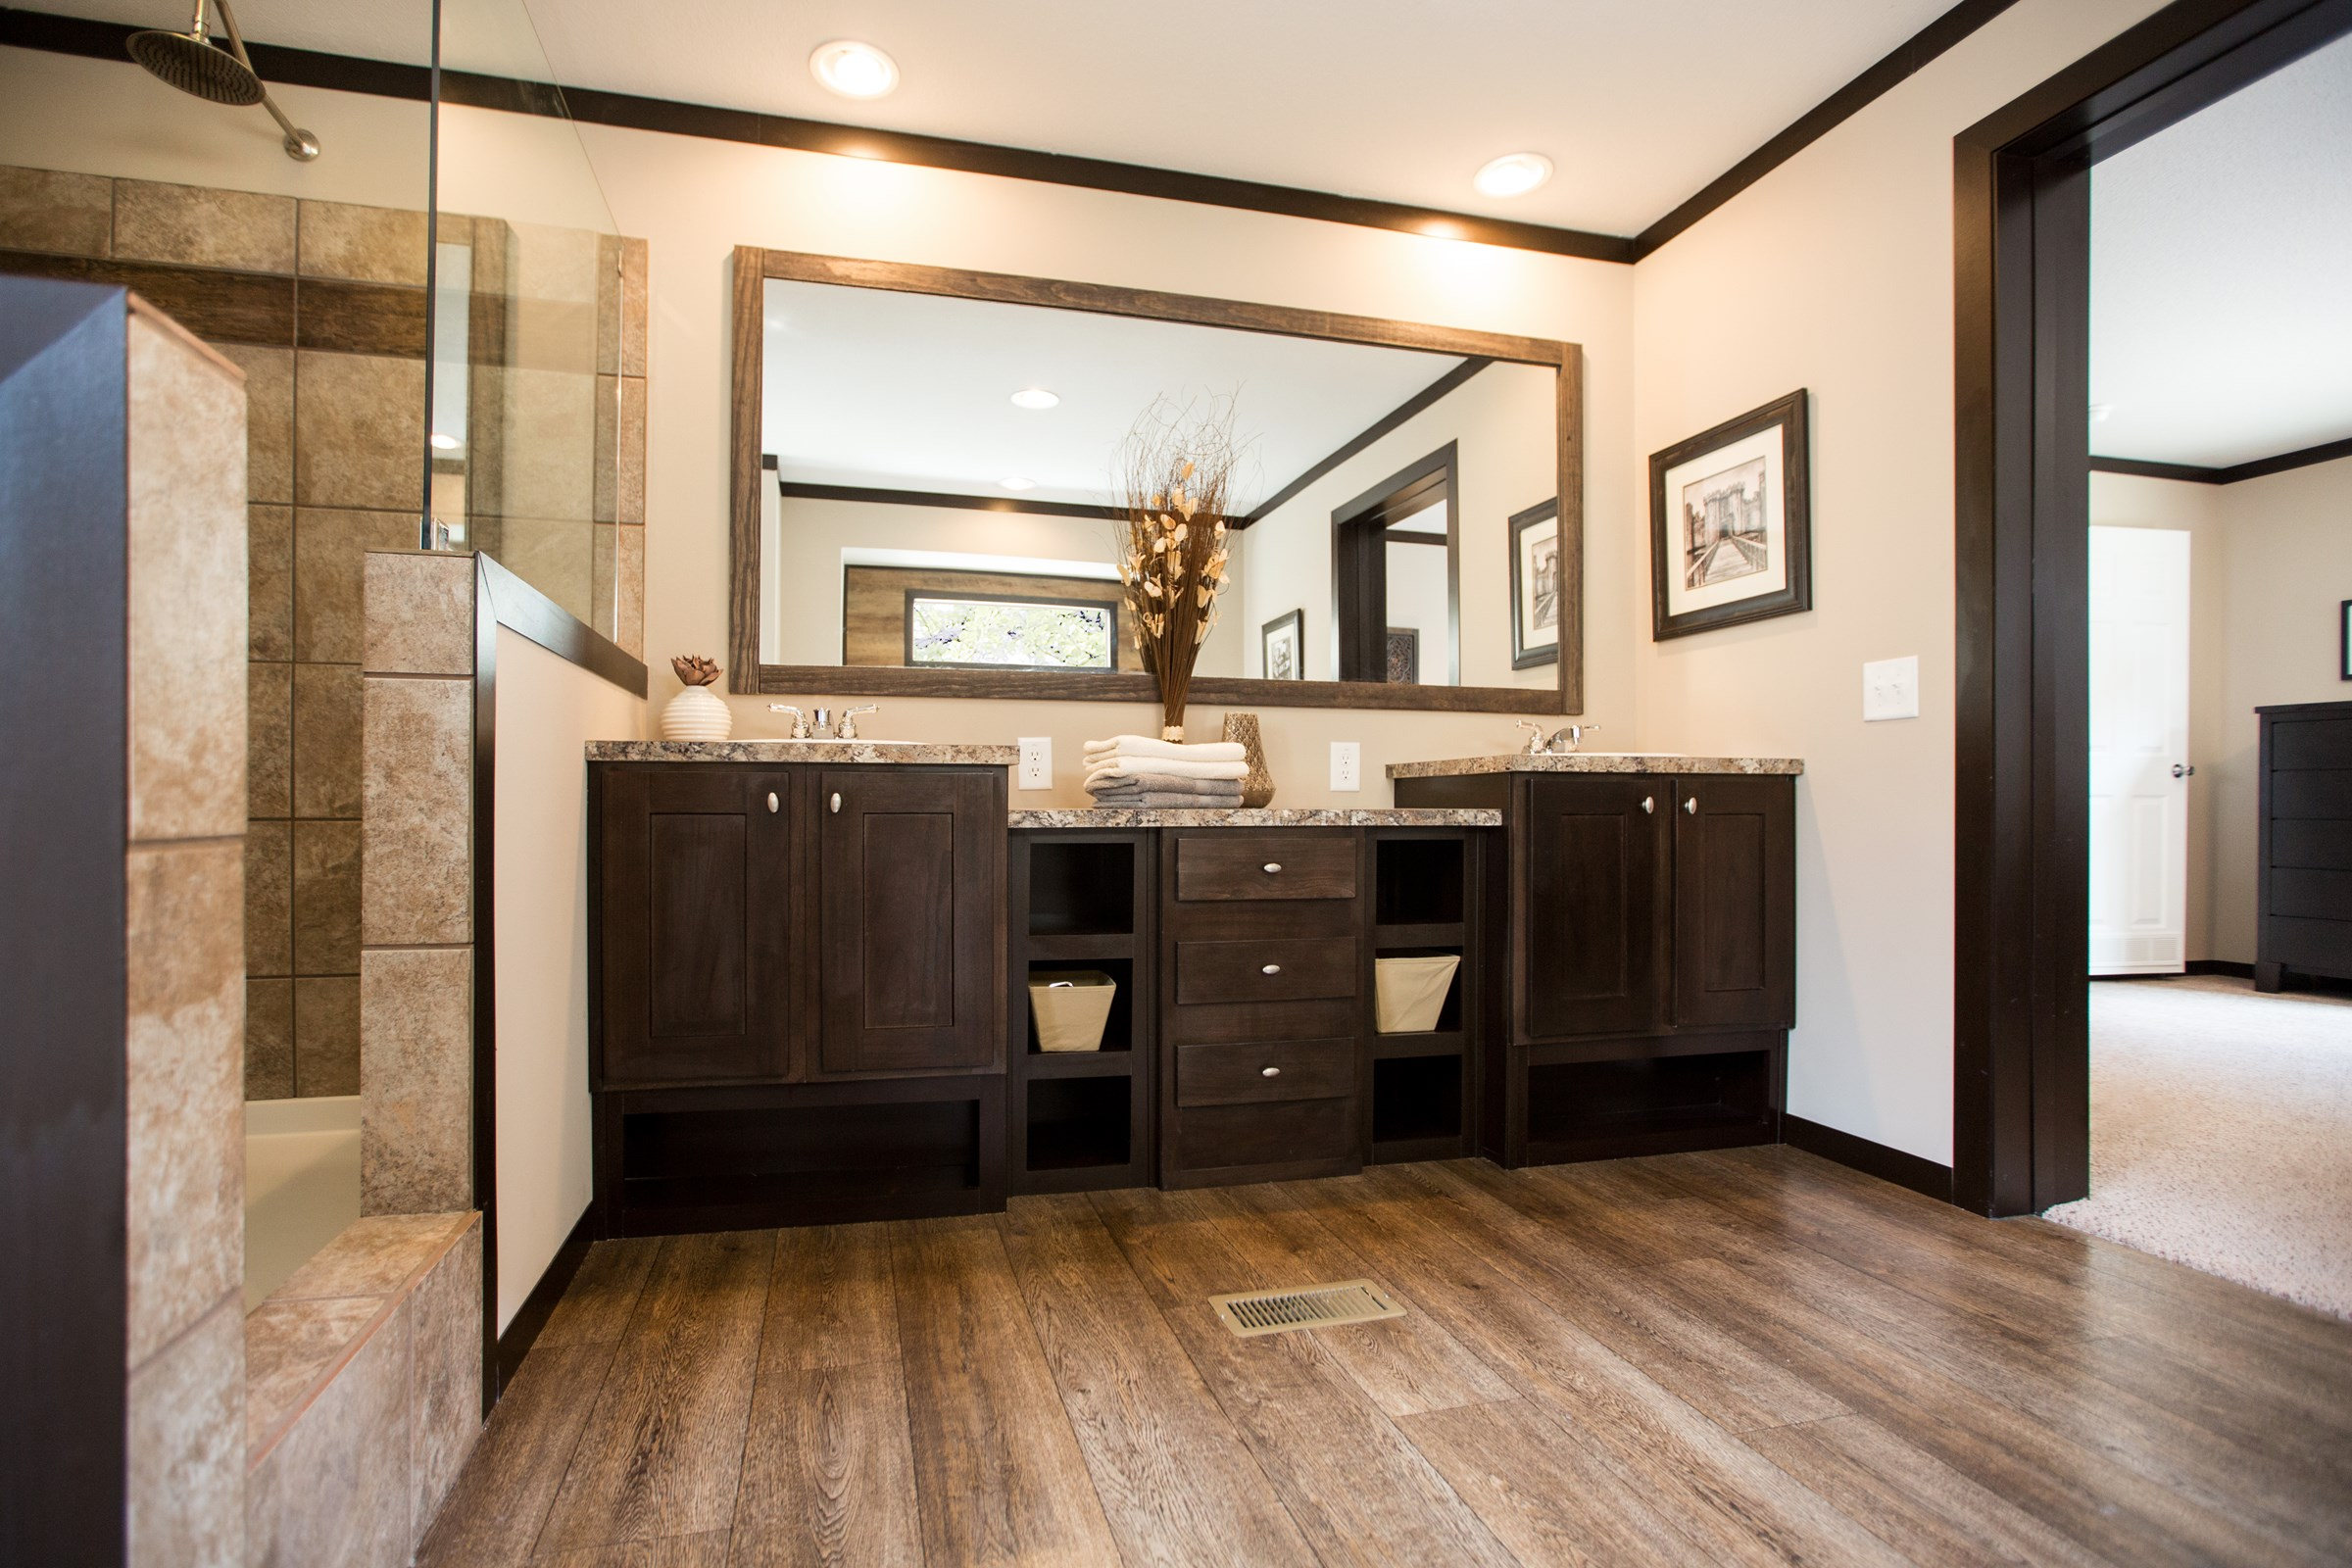 437 Master Bathroom